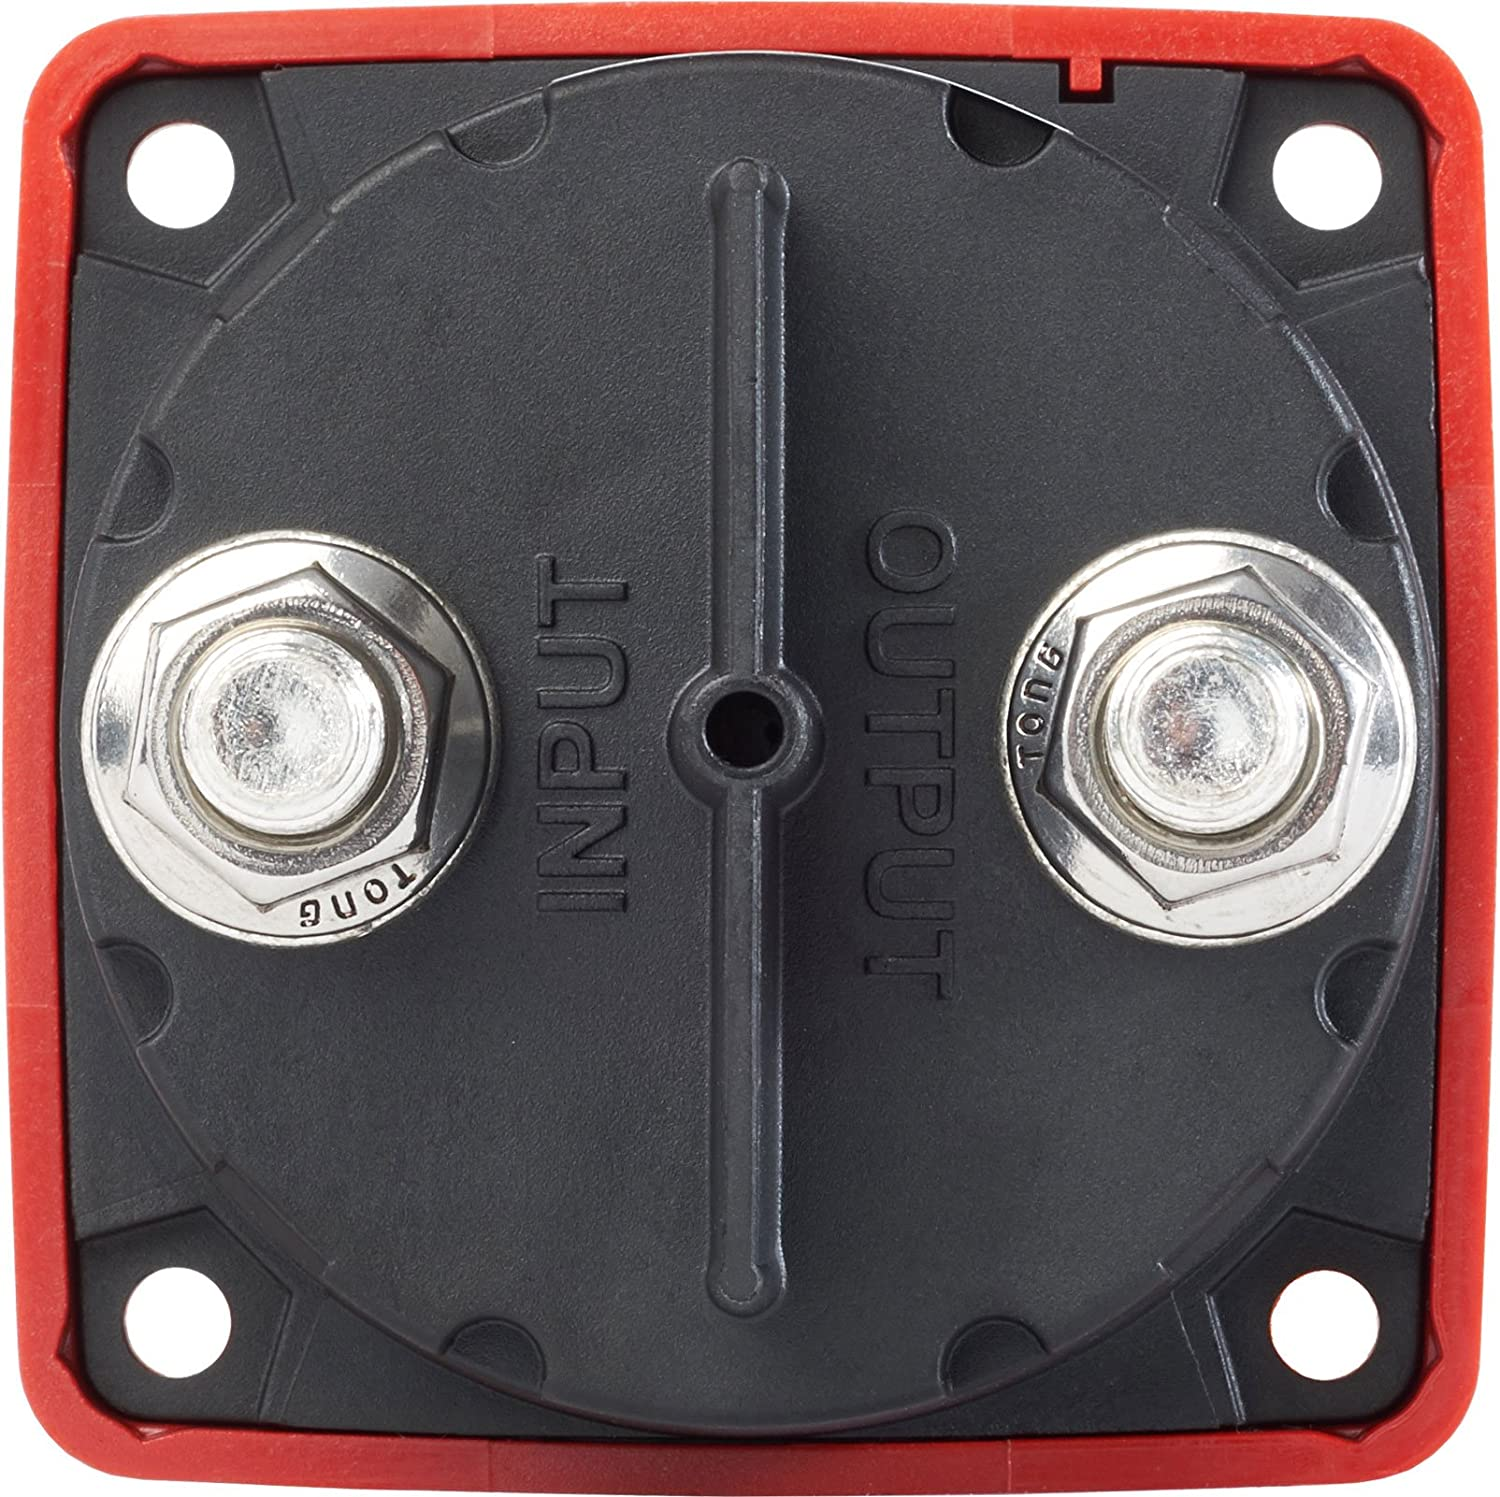 Solar SWITCH-MINI AM Solar Blue Sea Systems M Series Single Circuit Battery On//Off Switch A.M